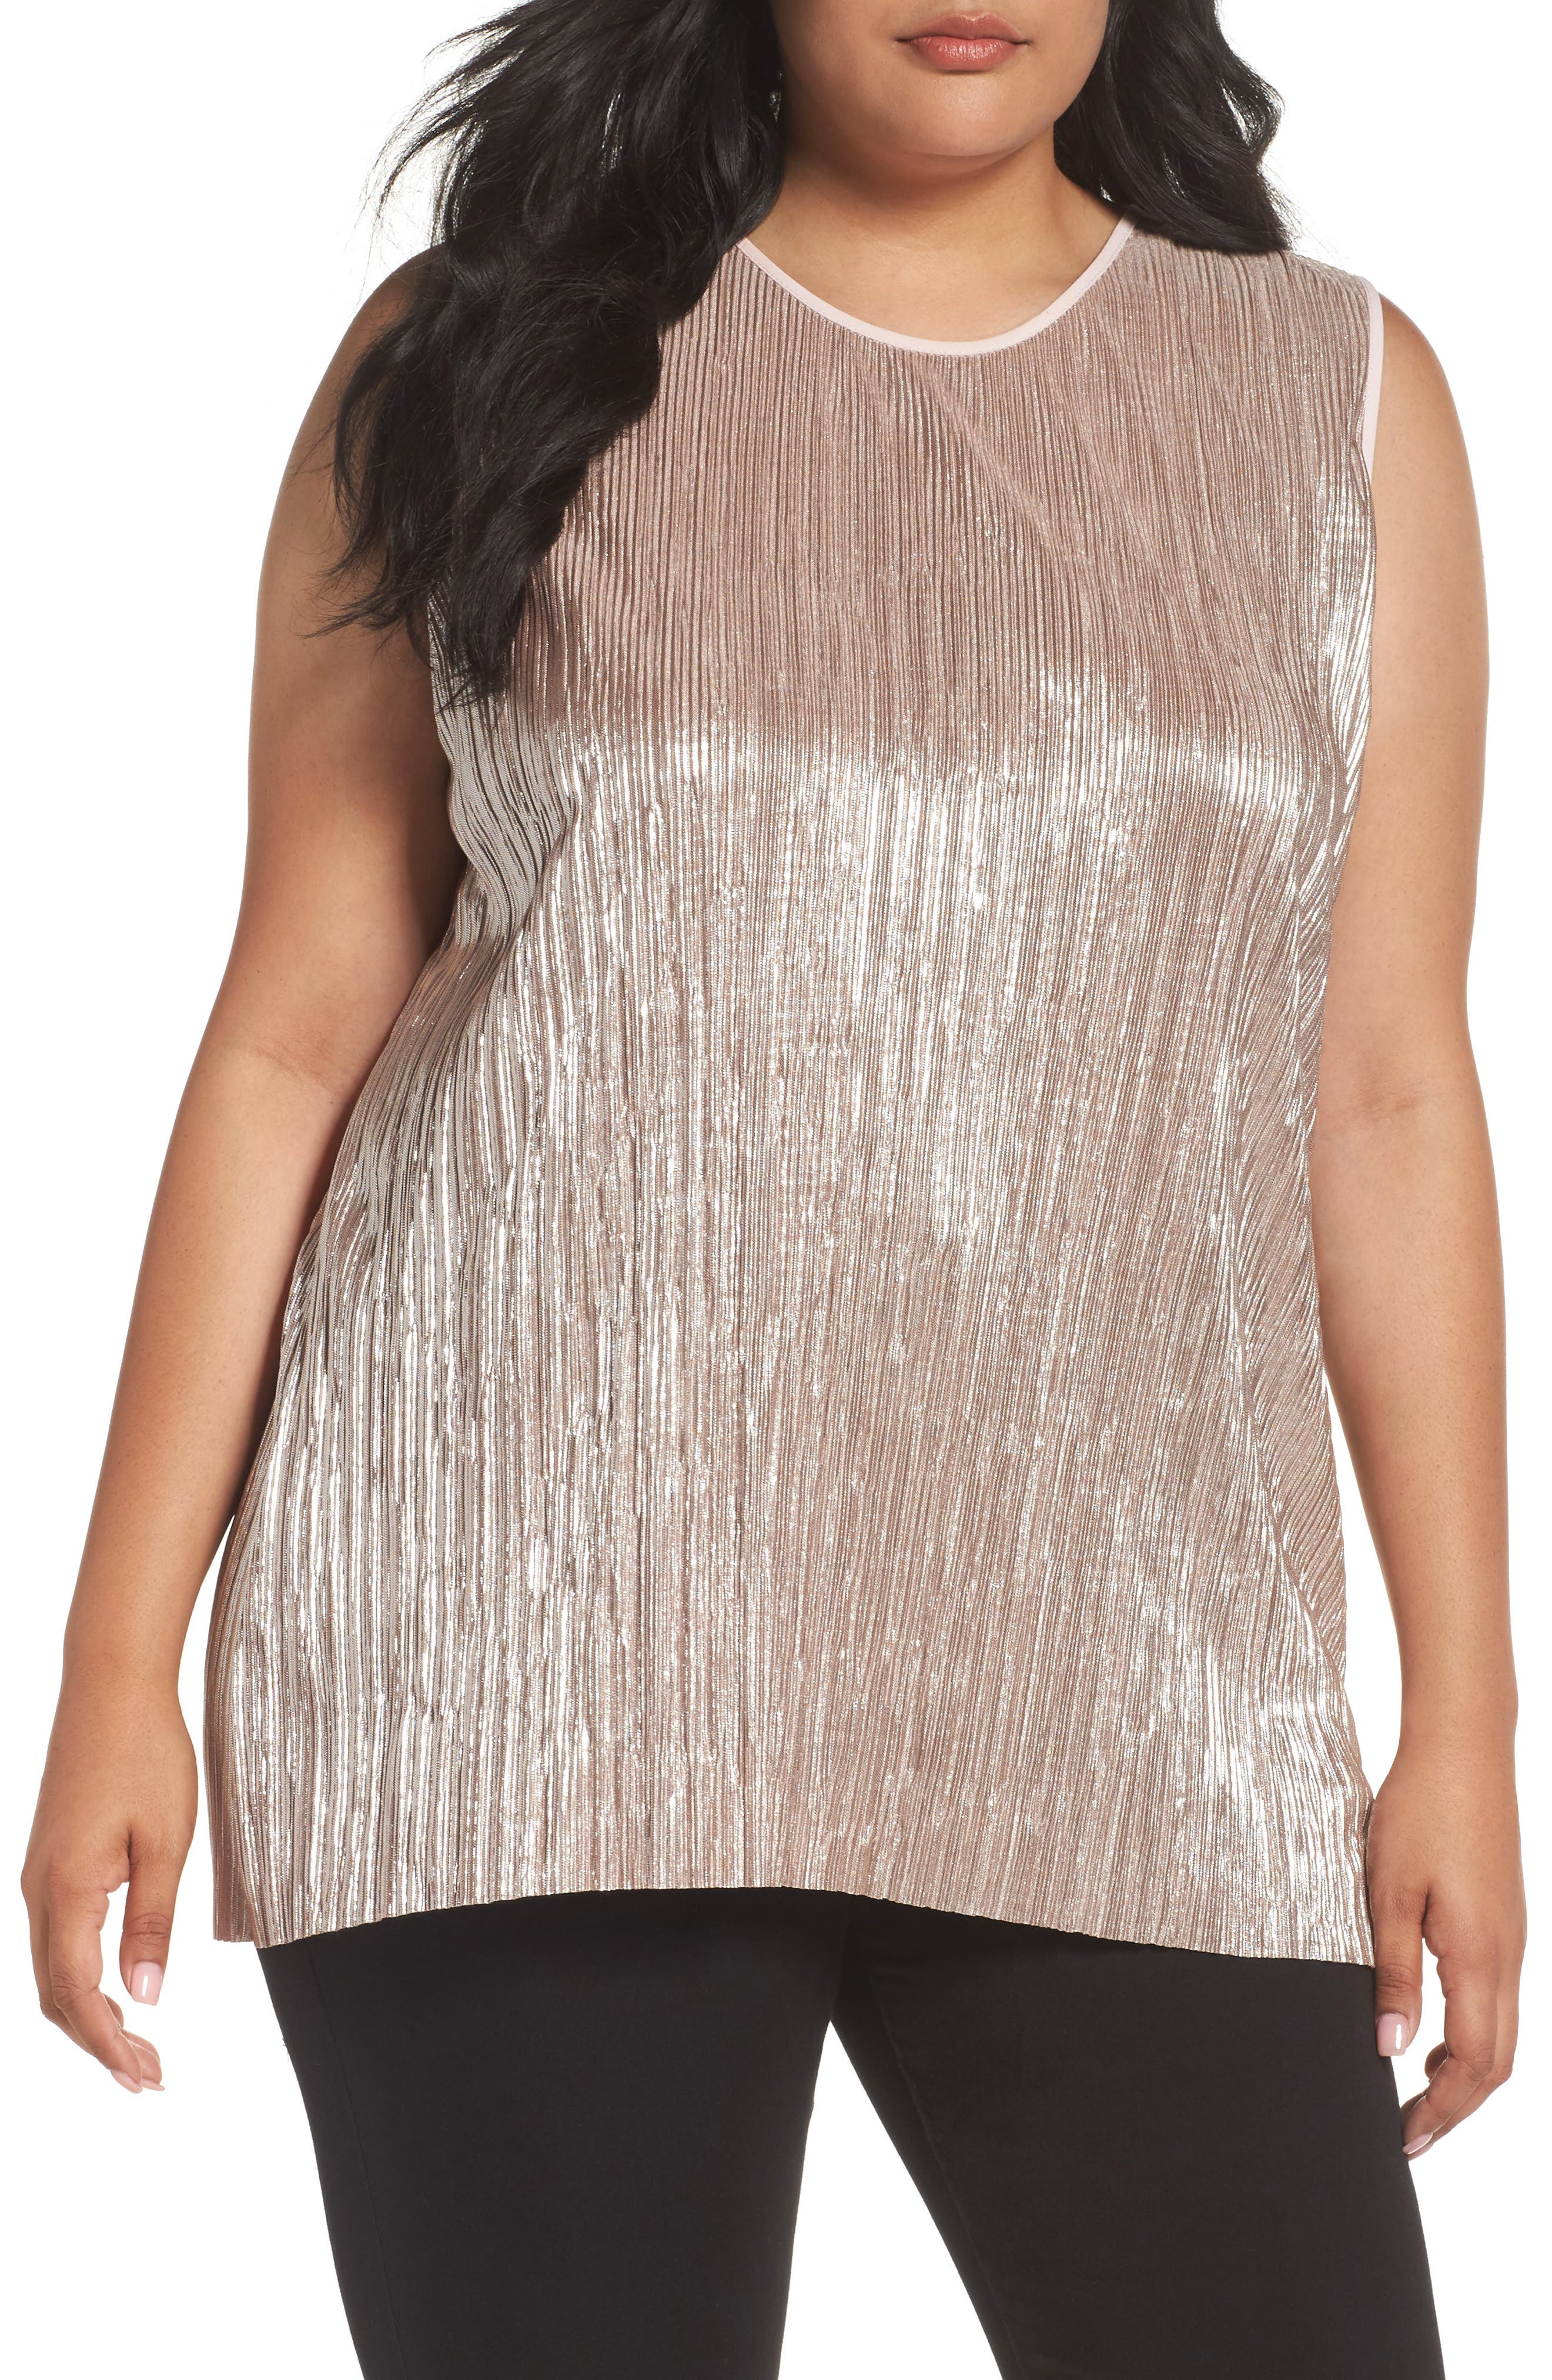 Vince Camuto Crushed Foil Pleated Top (Plus Size)